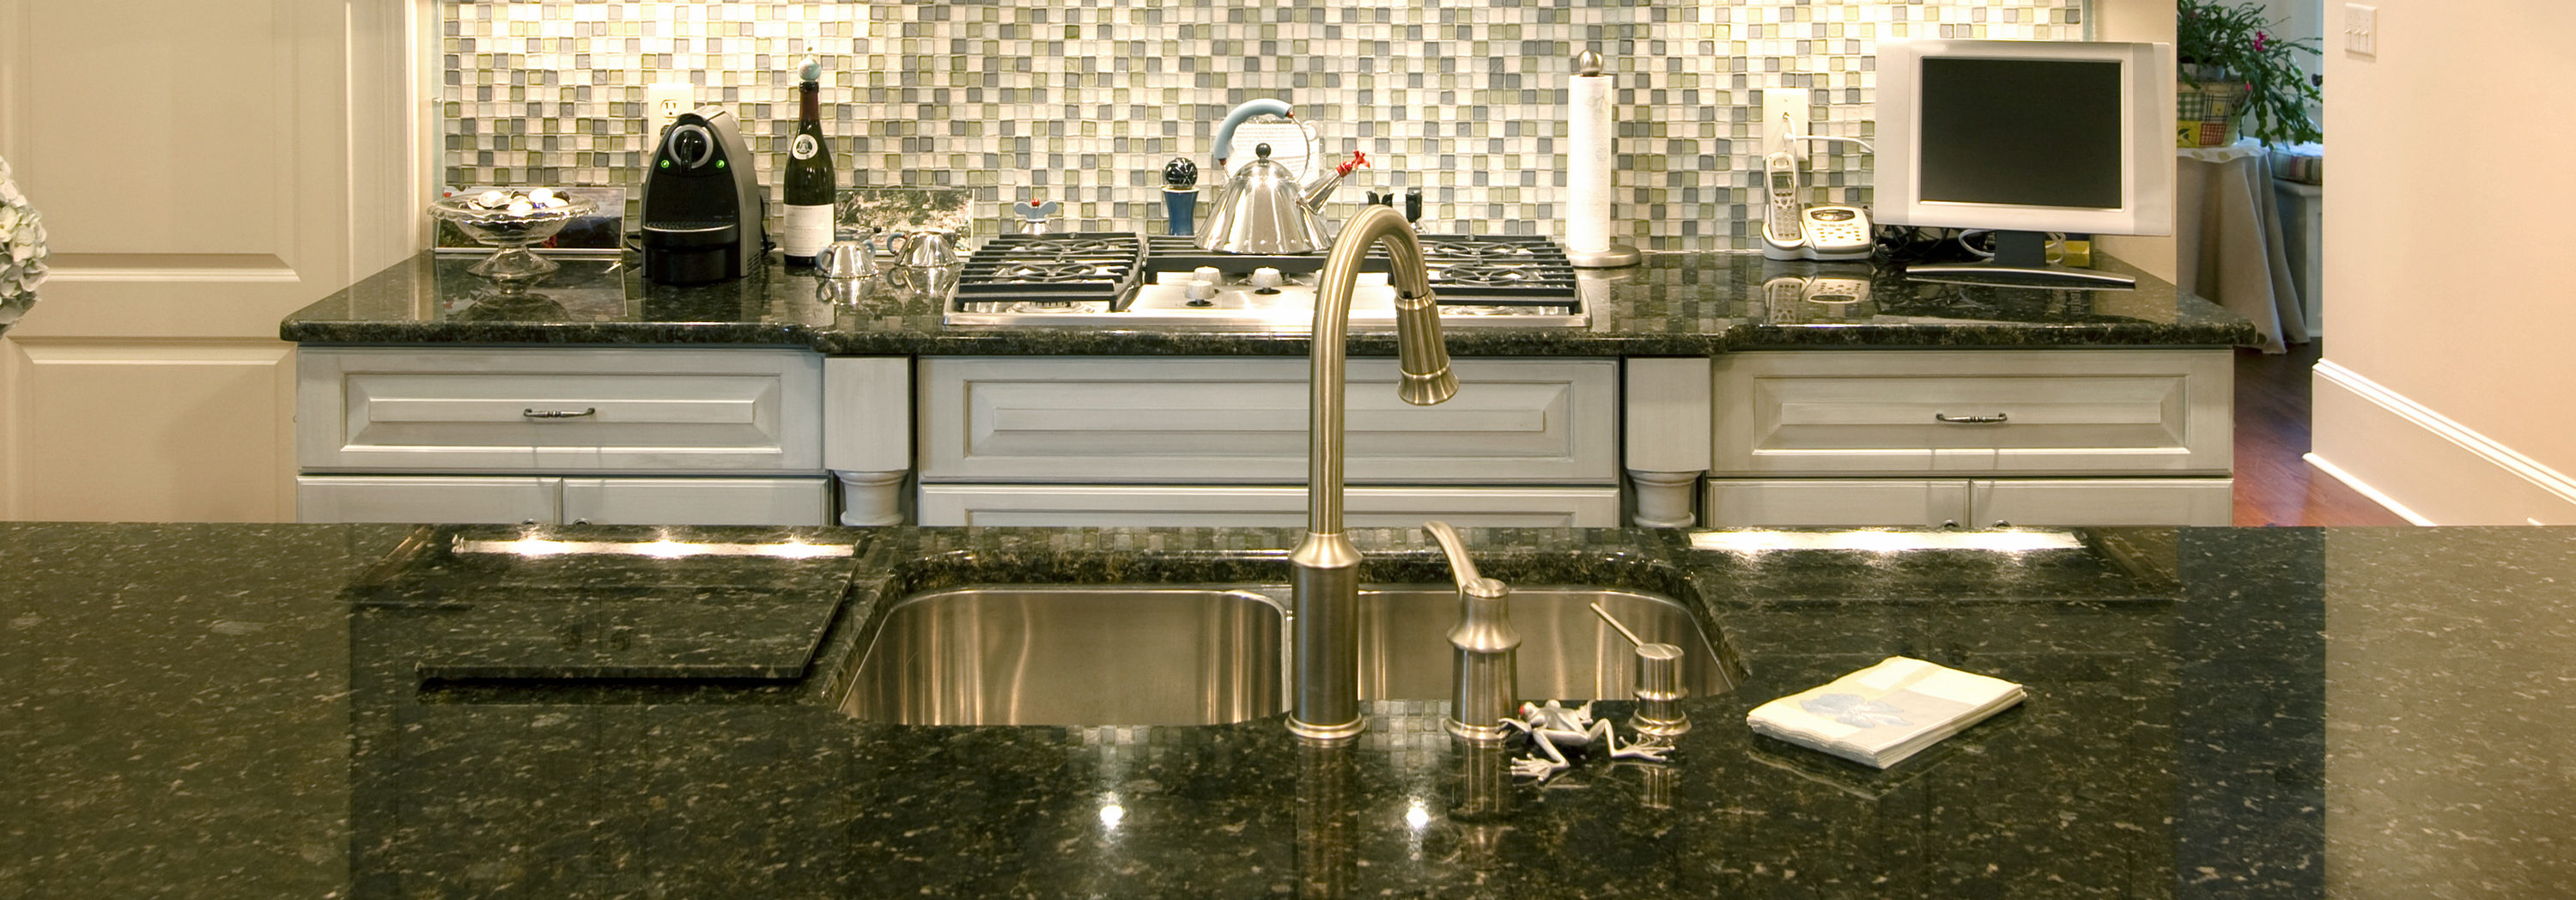 Kitchen Faucet Prices Install Or Replacement Cost